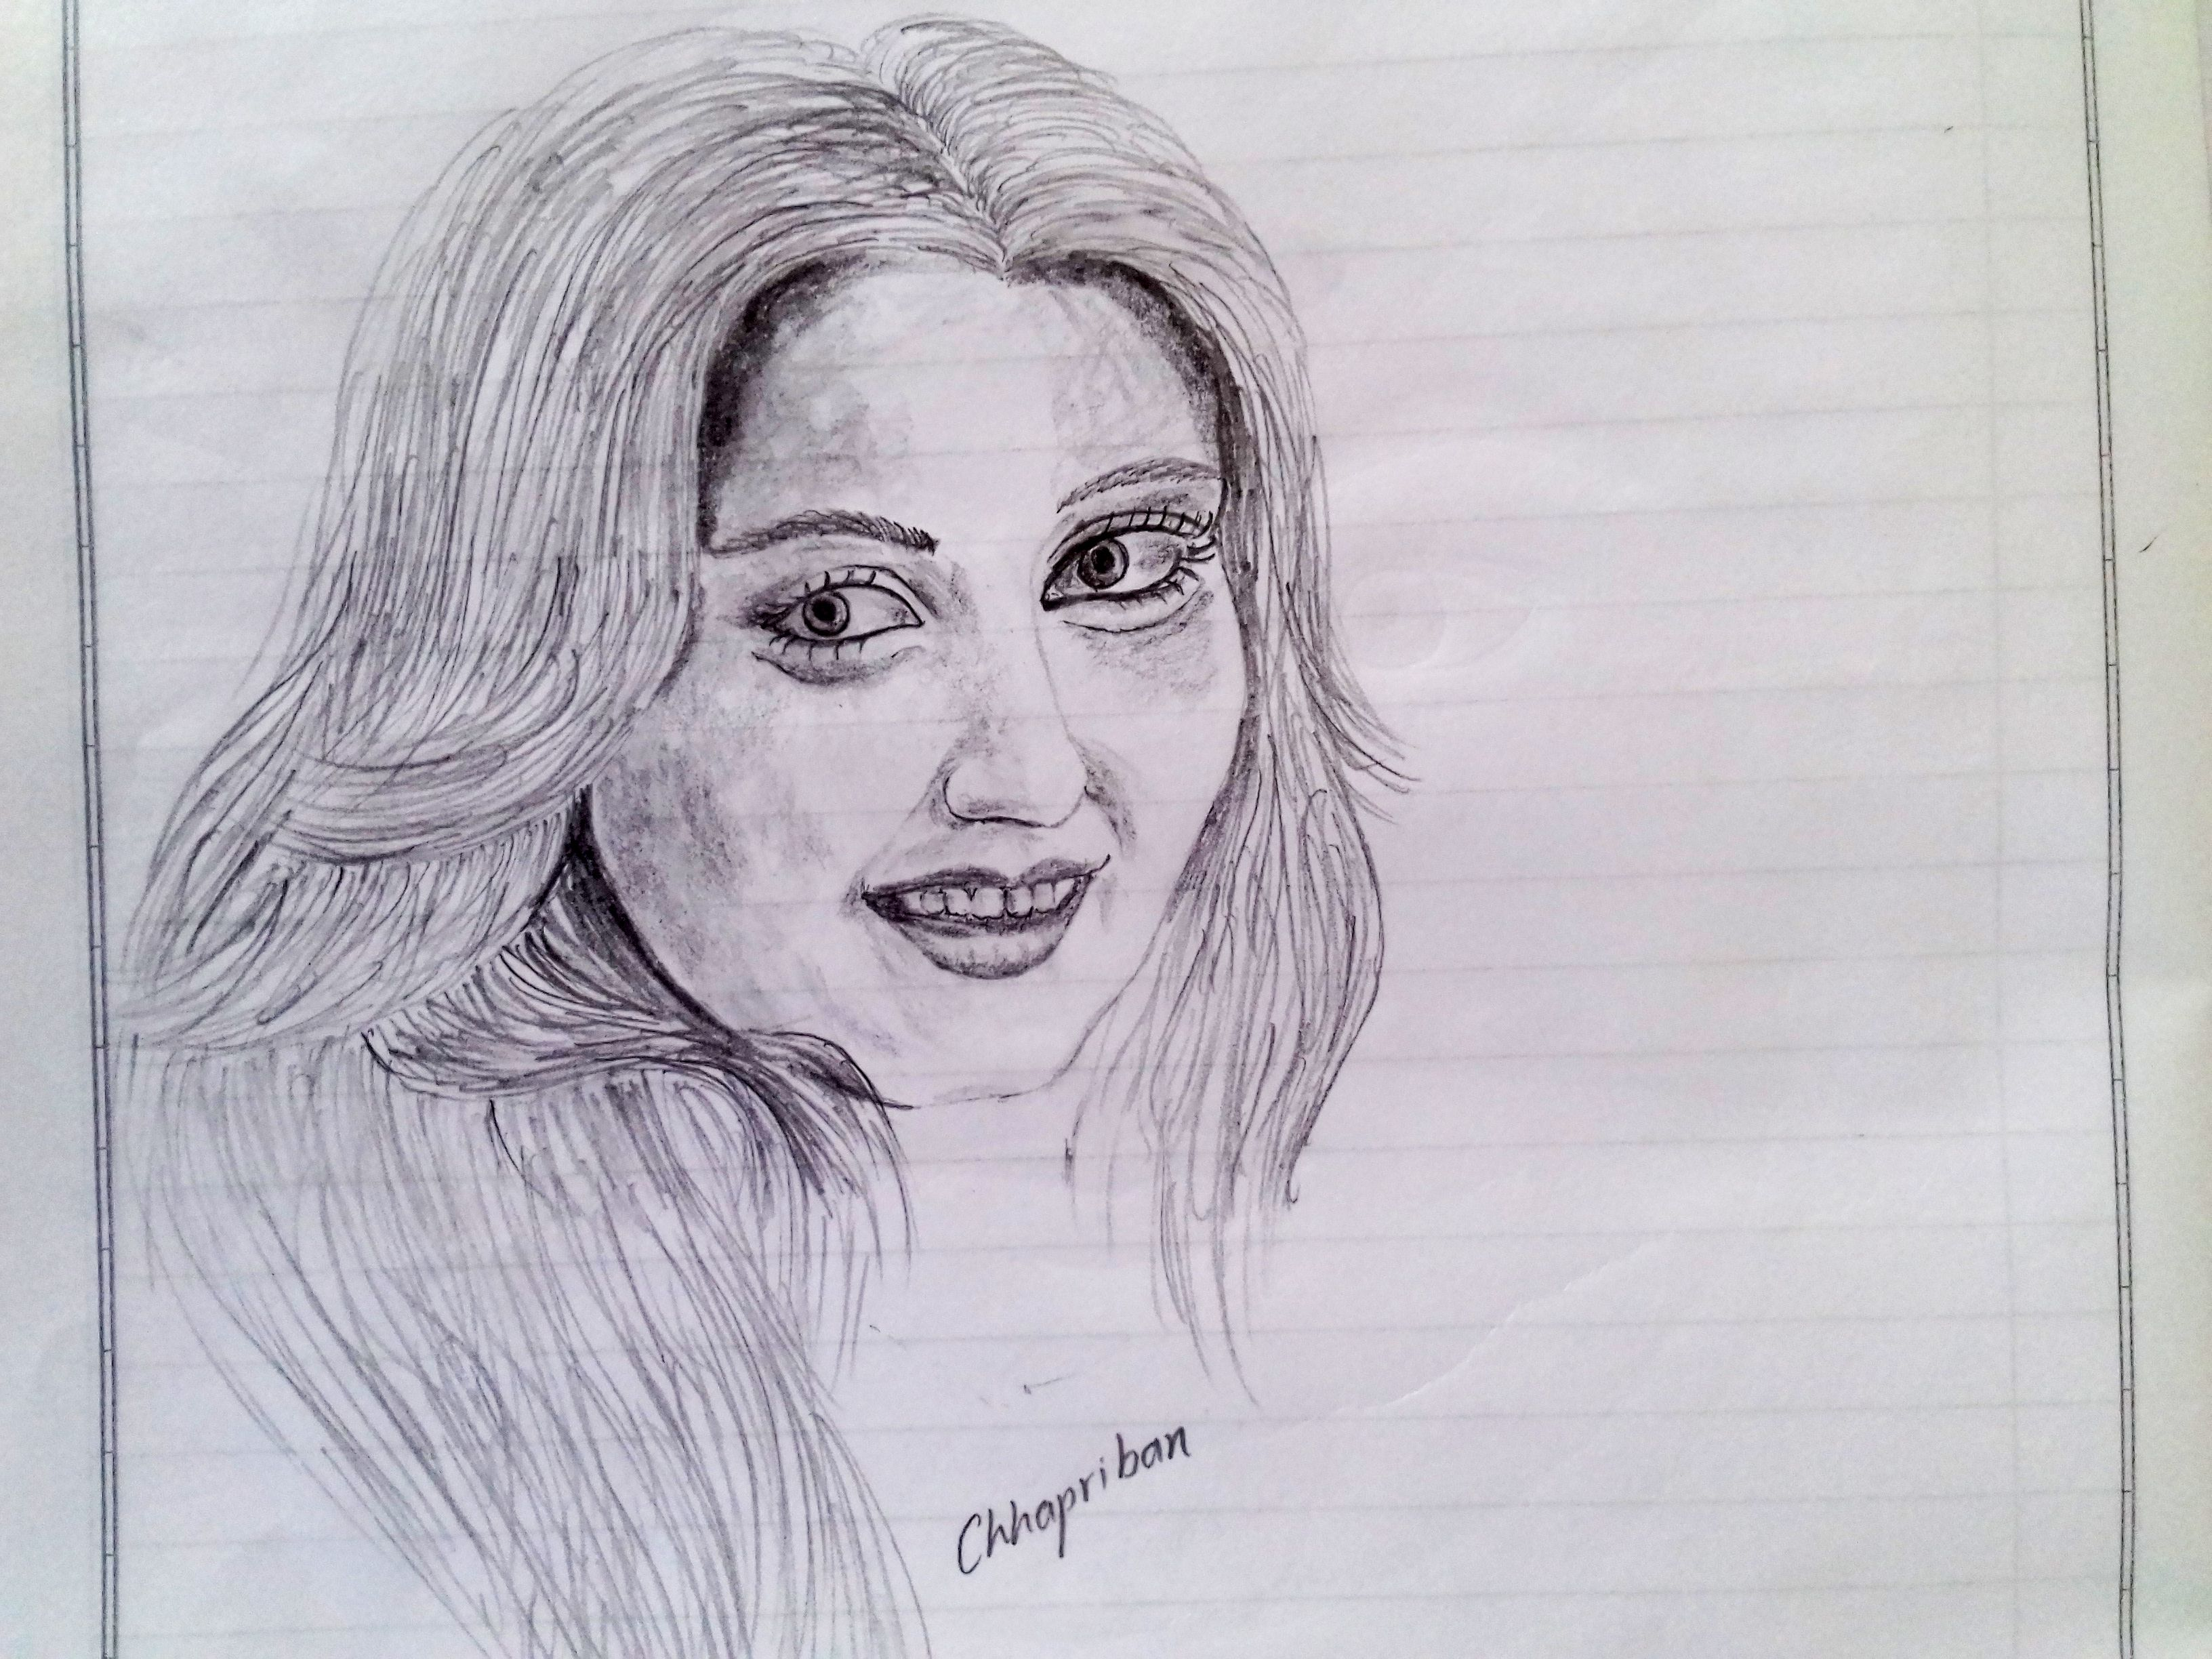 Cute indian girl indian girls pencil sketches drawings sketch sketching